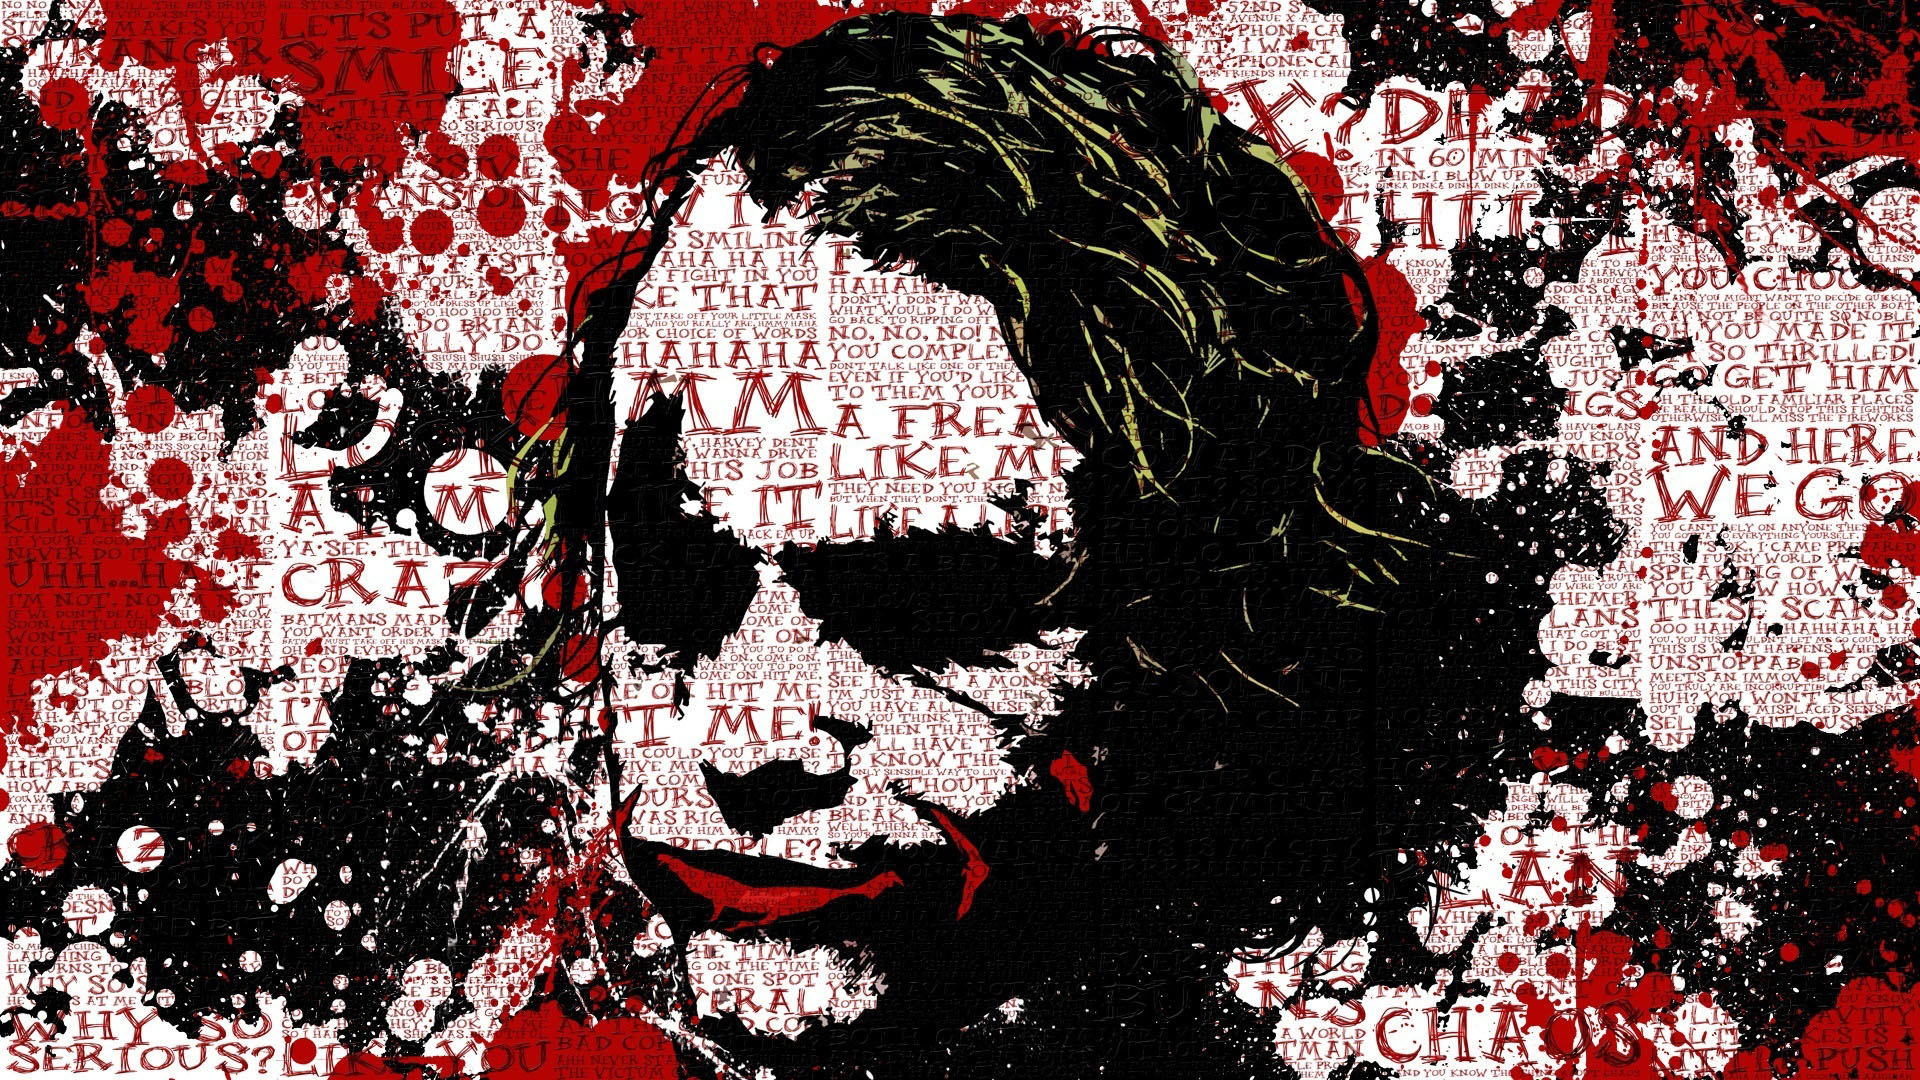 Joker Hd Wallpapers 1080P wallpaper   1117164 1920x1080